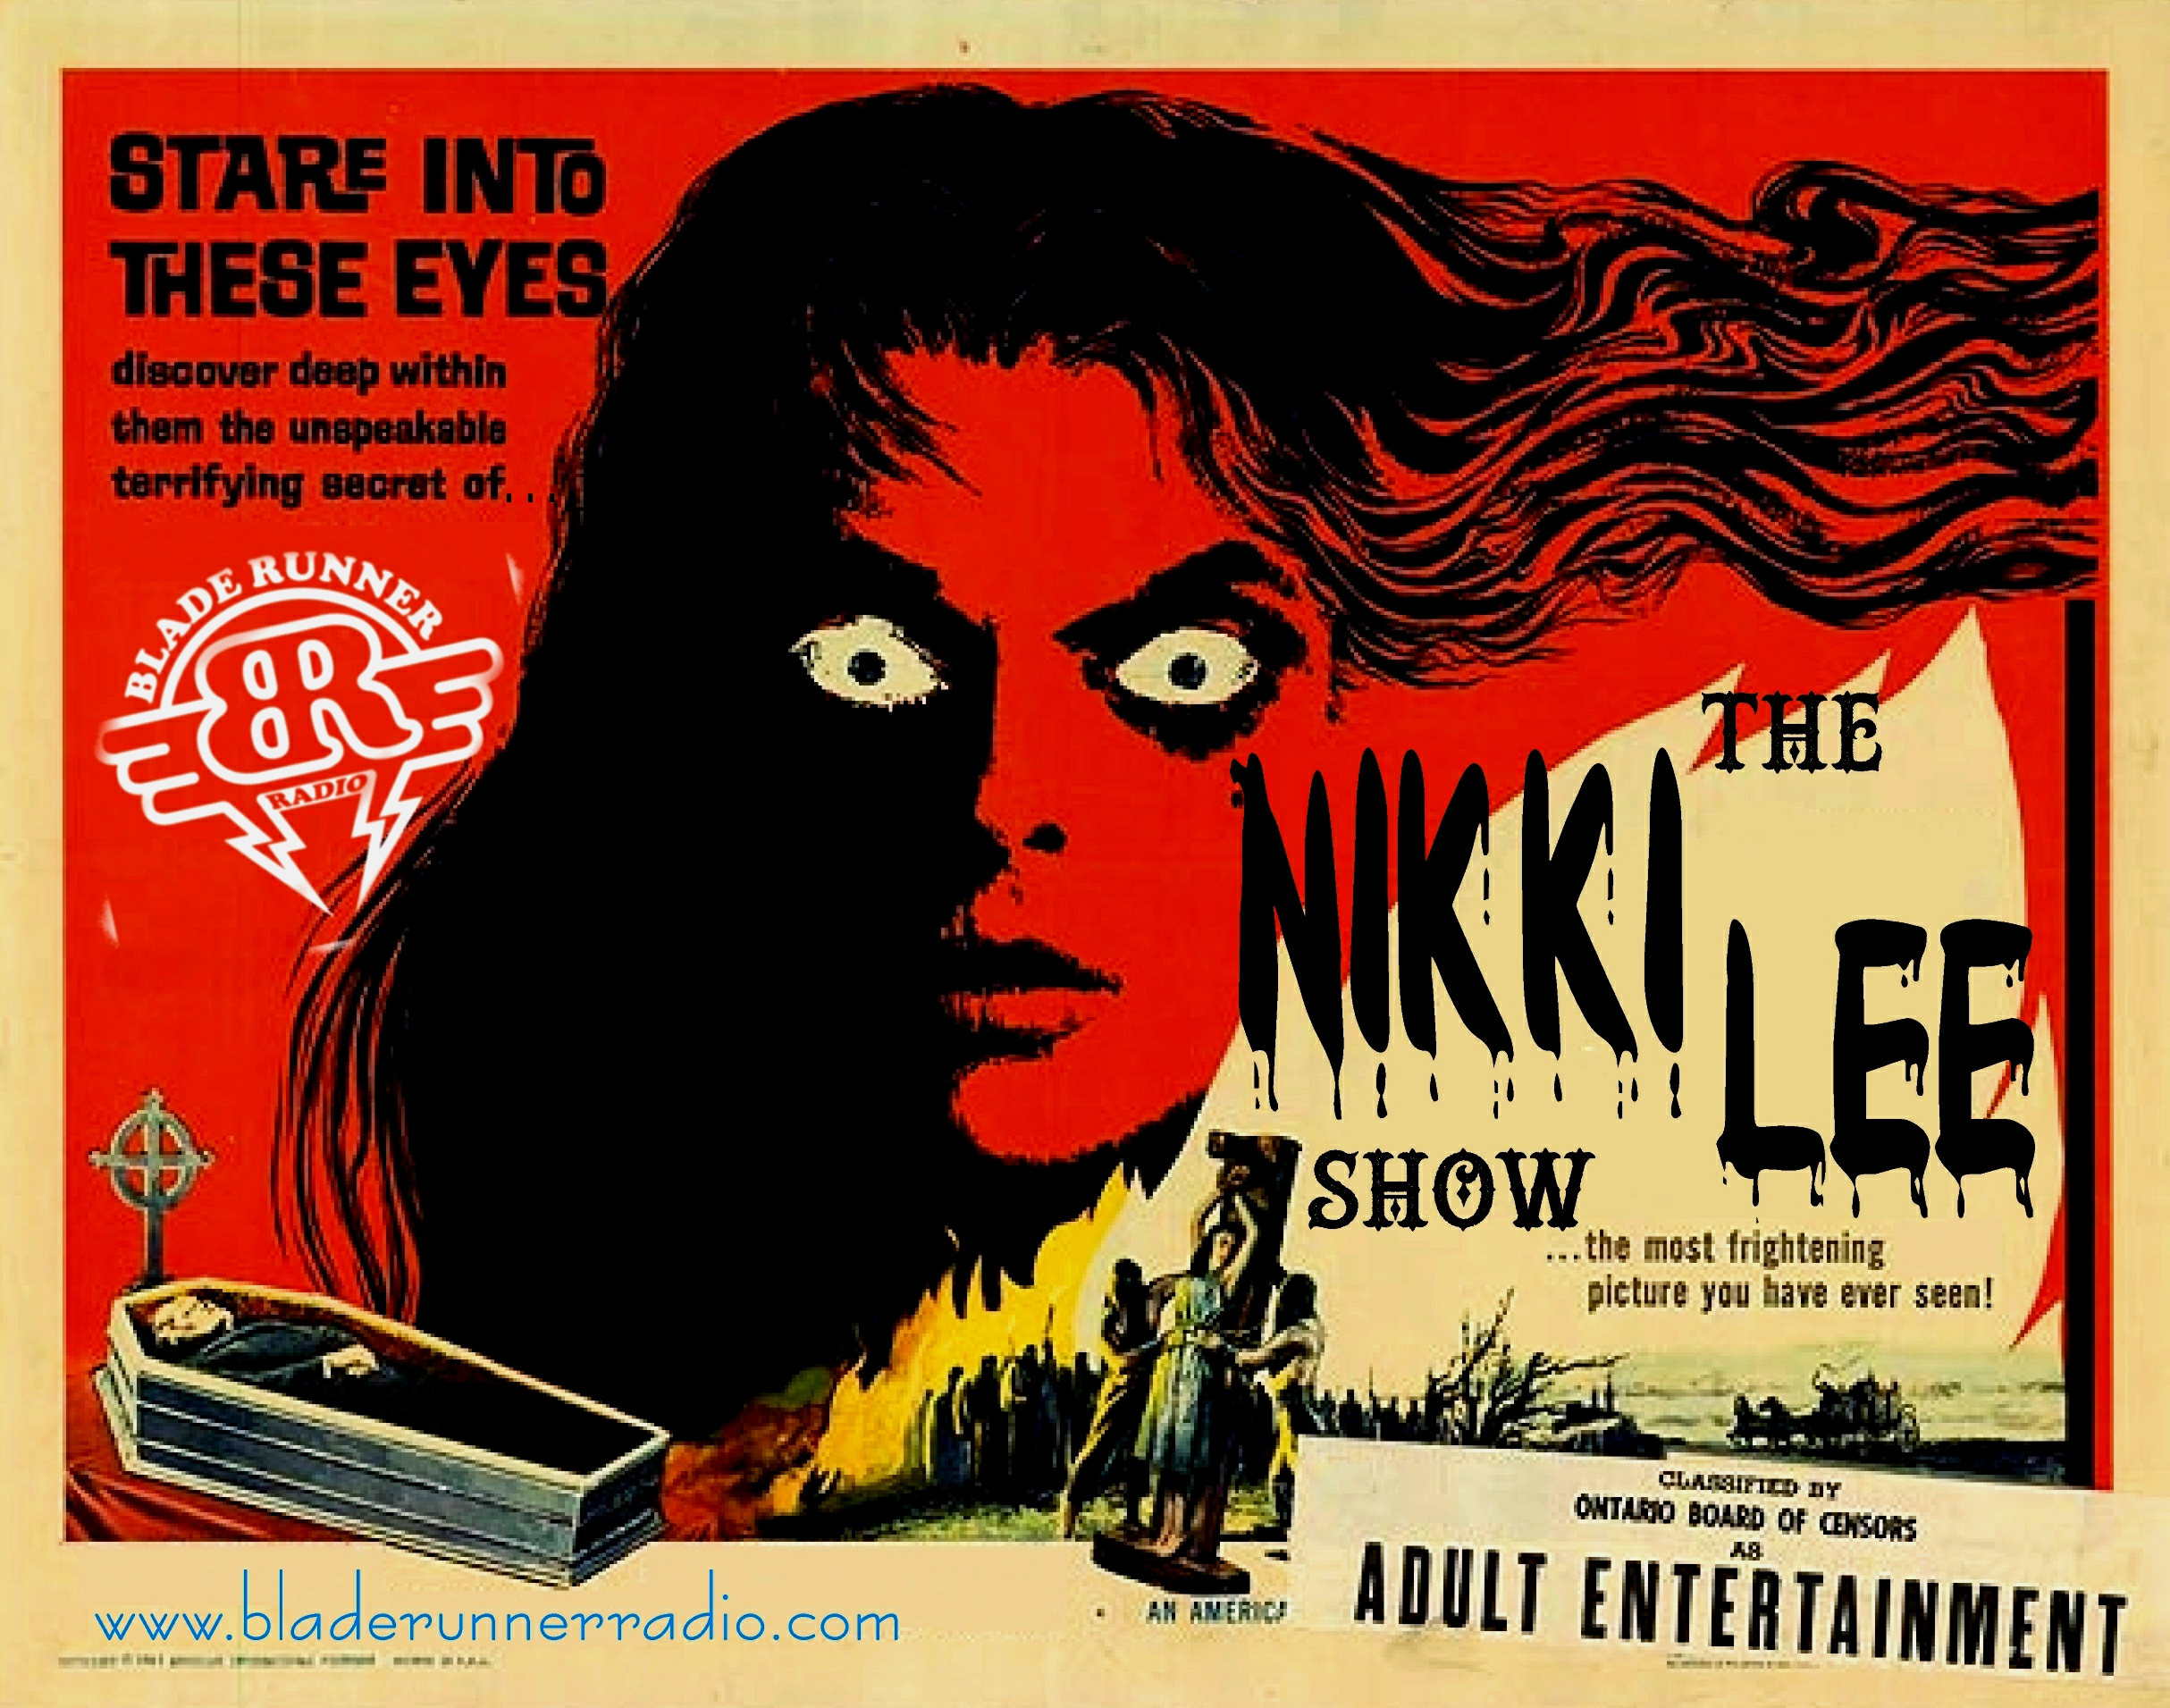 NIKKI LEE BLACK EYES MOVIE POSTER